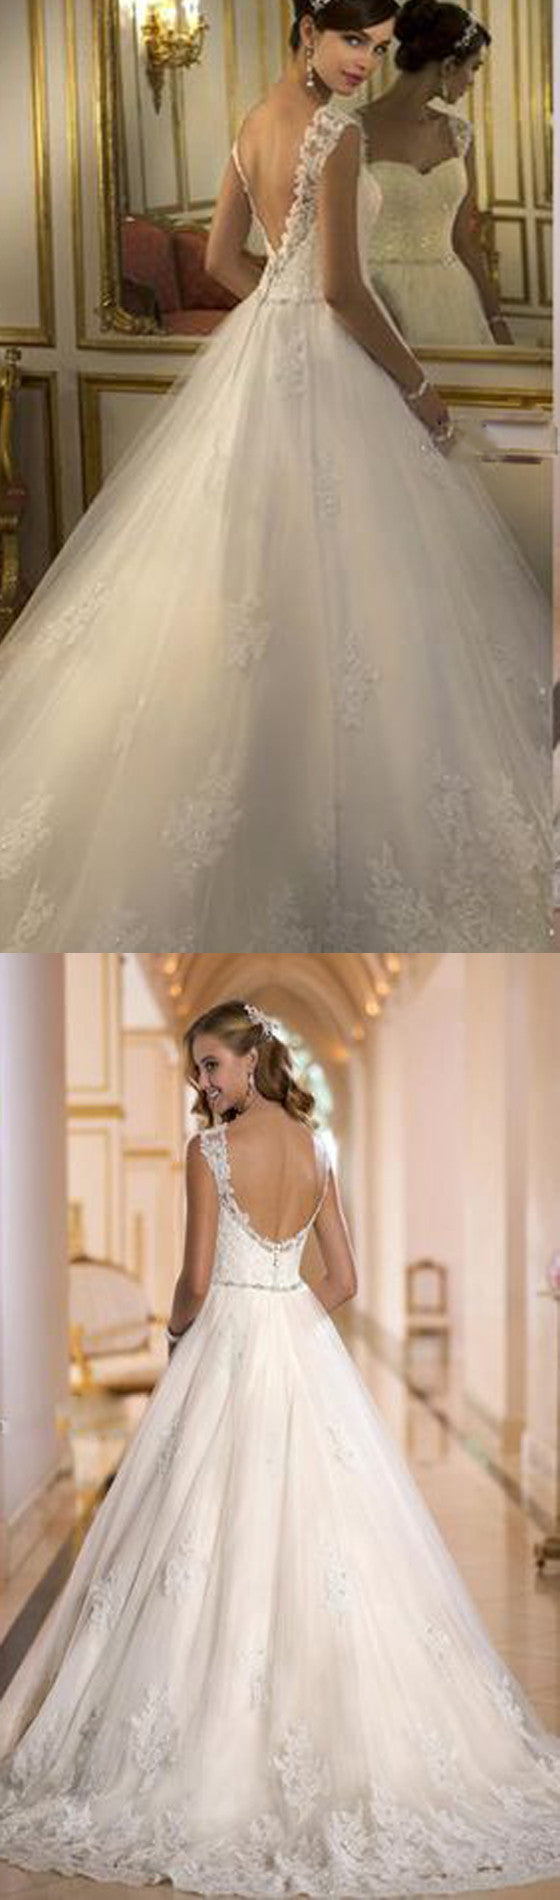 2017 Cap Sleeve Ball Gown With Lace Princess Backless Wedding Dress ...